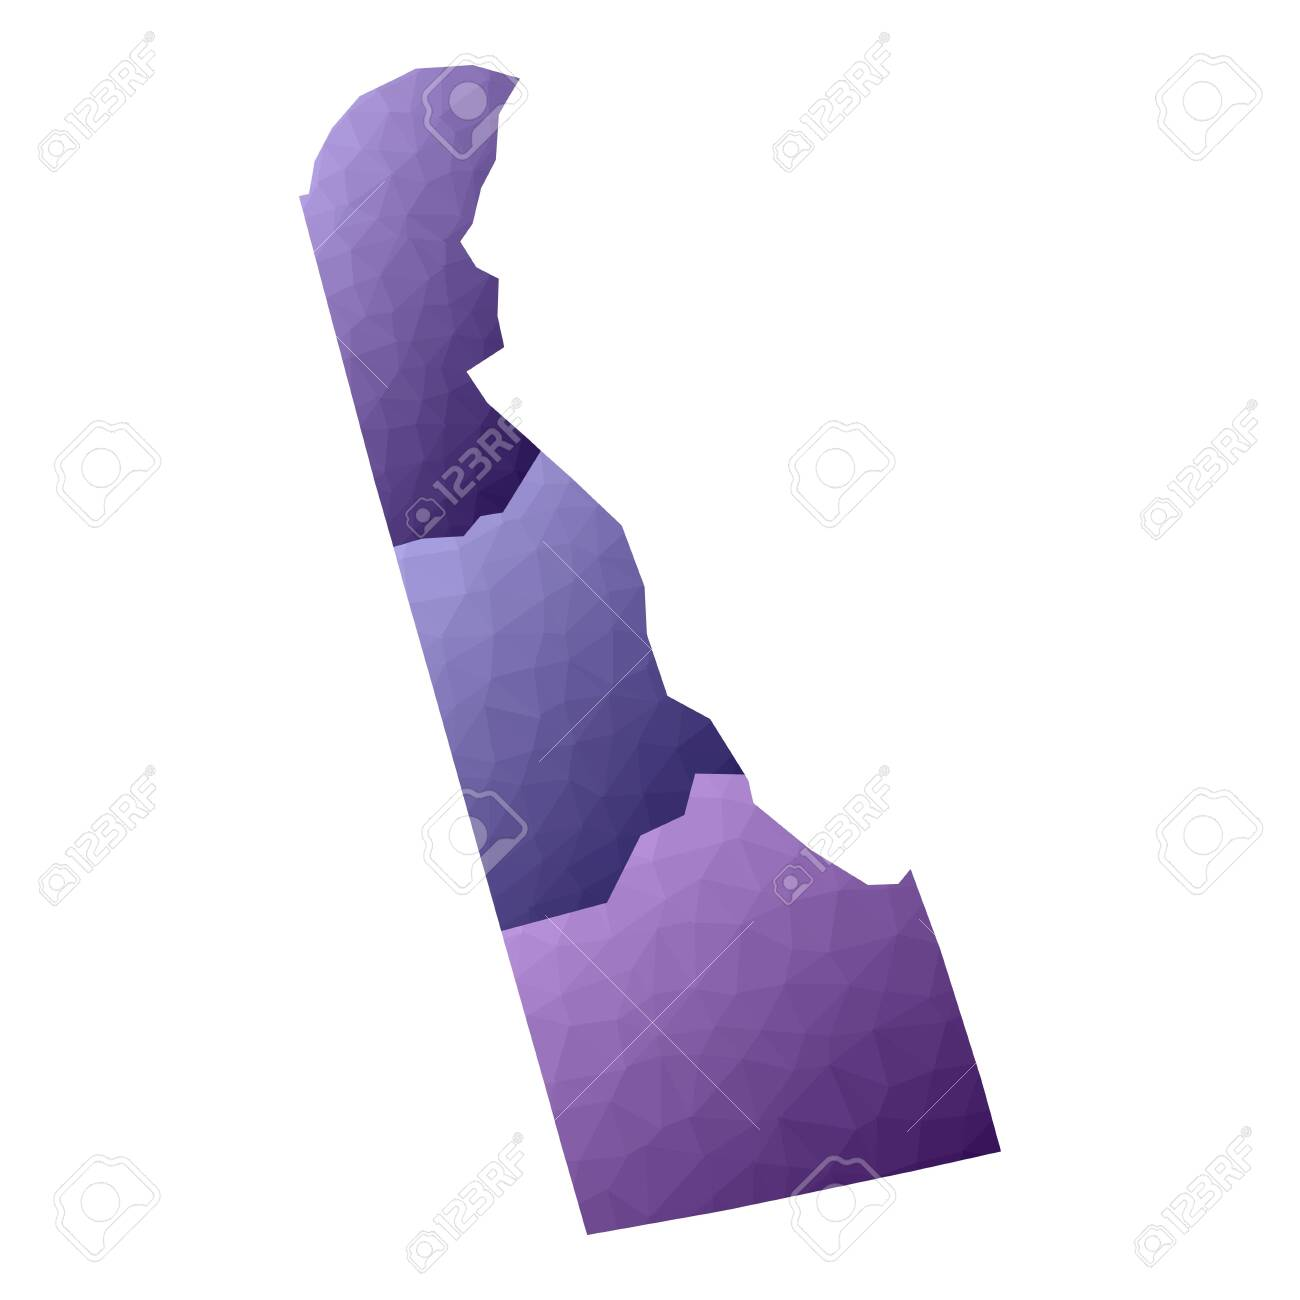 Delaware map. Geometric style us state outline with counties. Appealing violet vector illustration. - 121129609